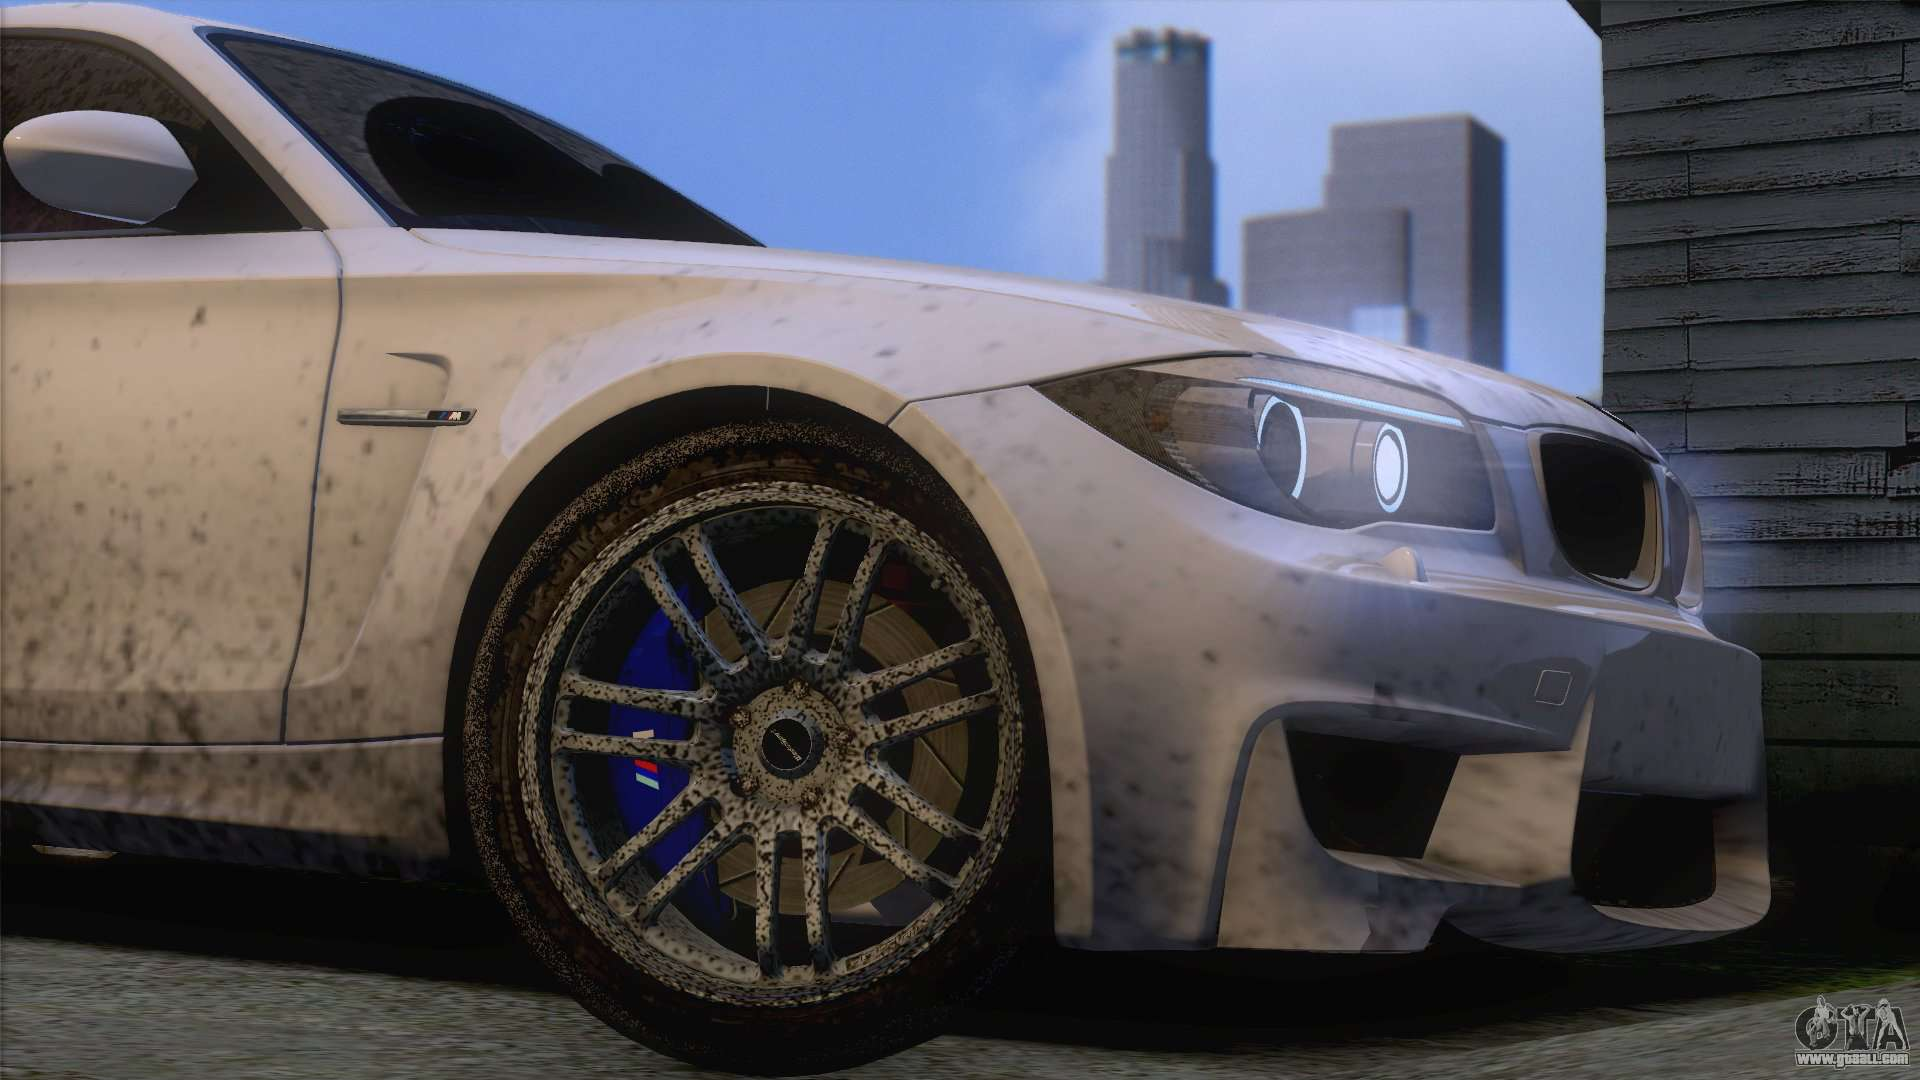 59923 Wheels Pack V2 likewise Gta 5 Cheats Xbox One Online as well 10296 Effects Of Predator V 10 besides 59044 Enb For S  V5 furthermore 44309 The Lego Shop. on fast cars gta 5